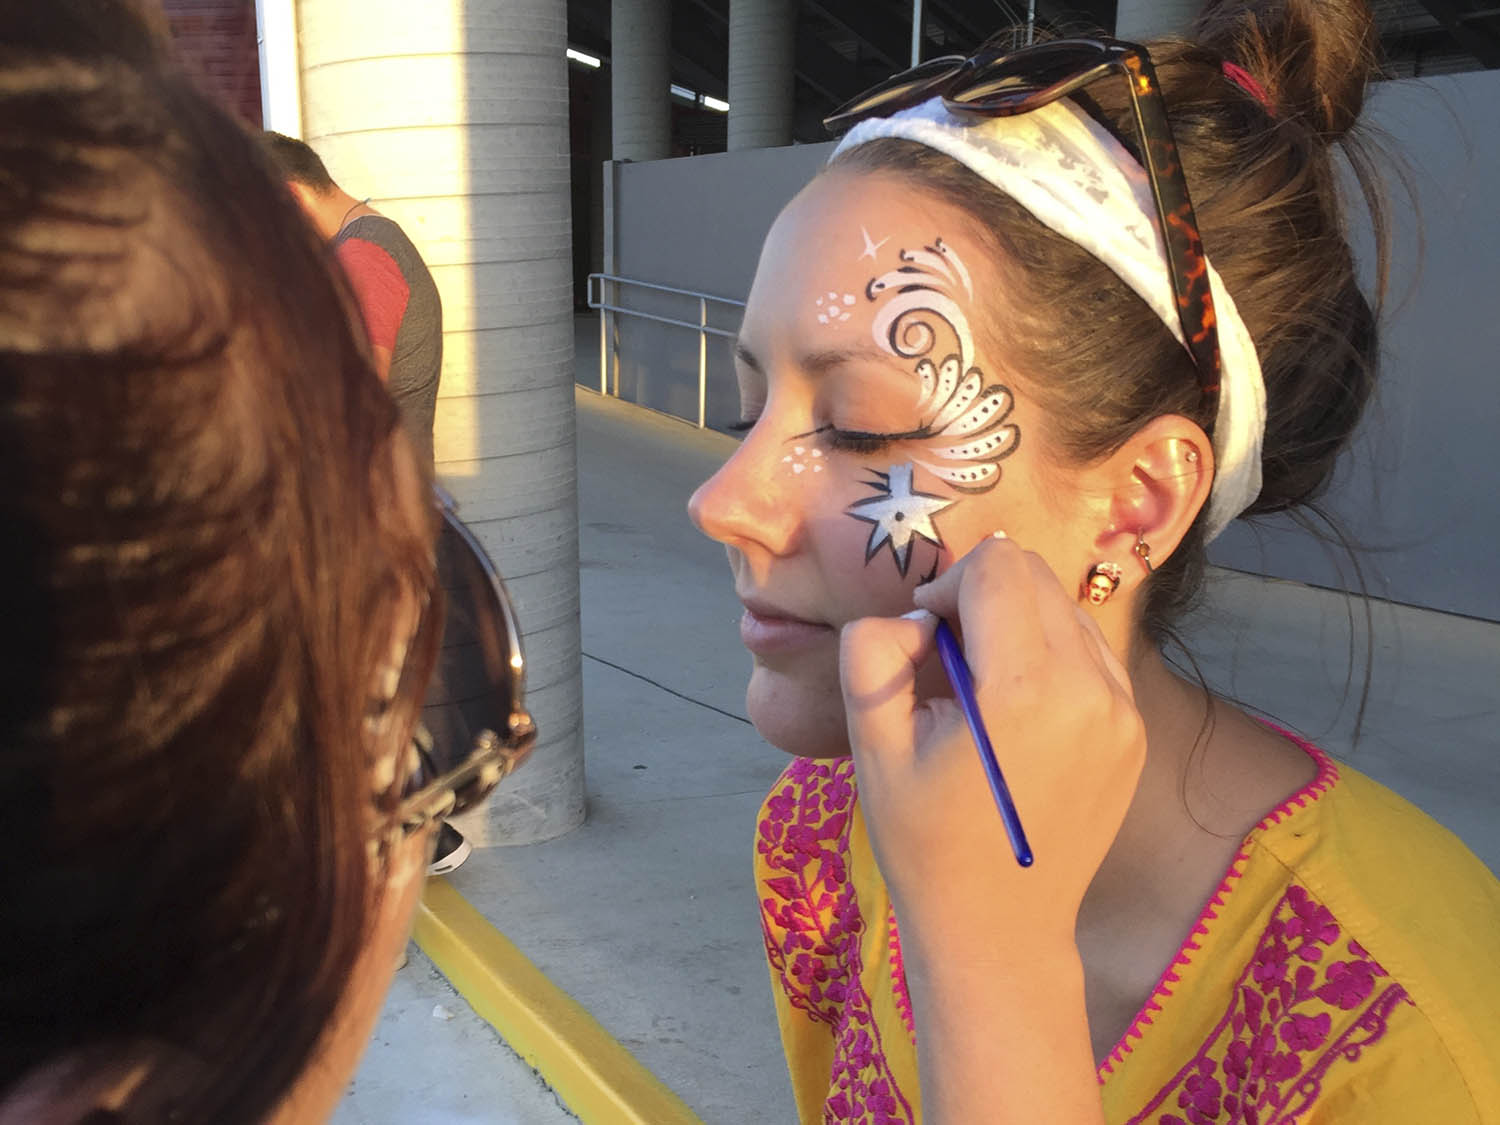 Artist applying custom face paint.